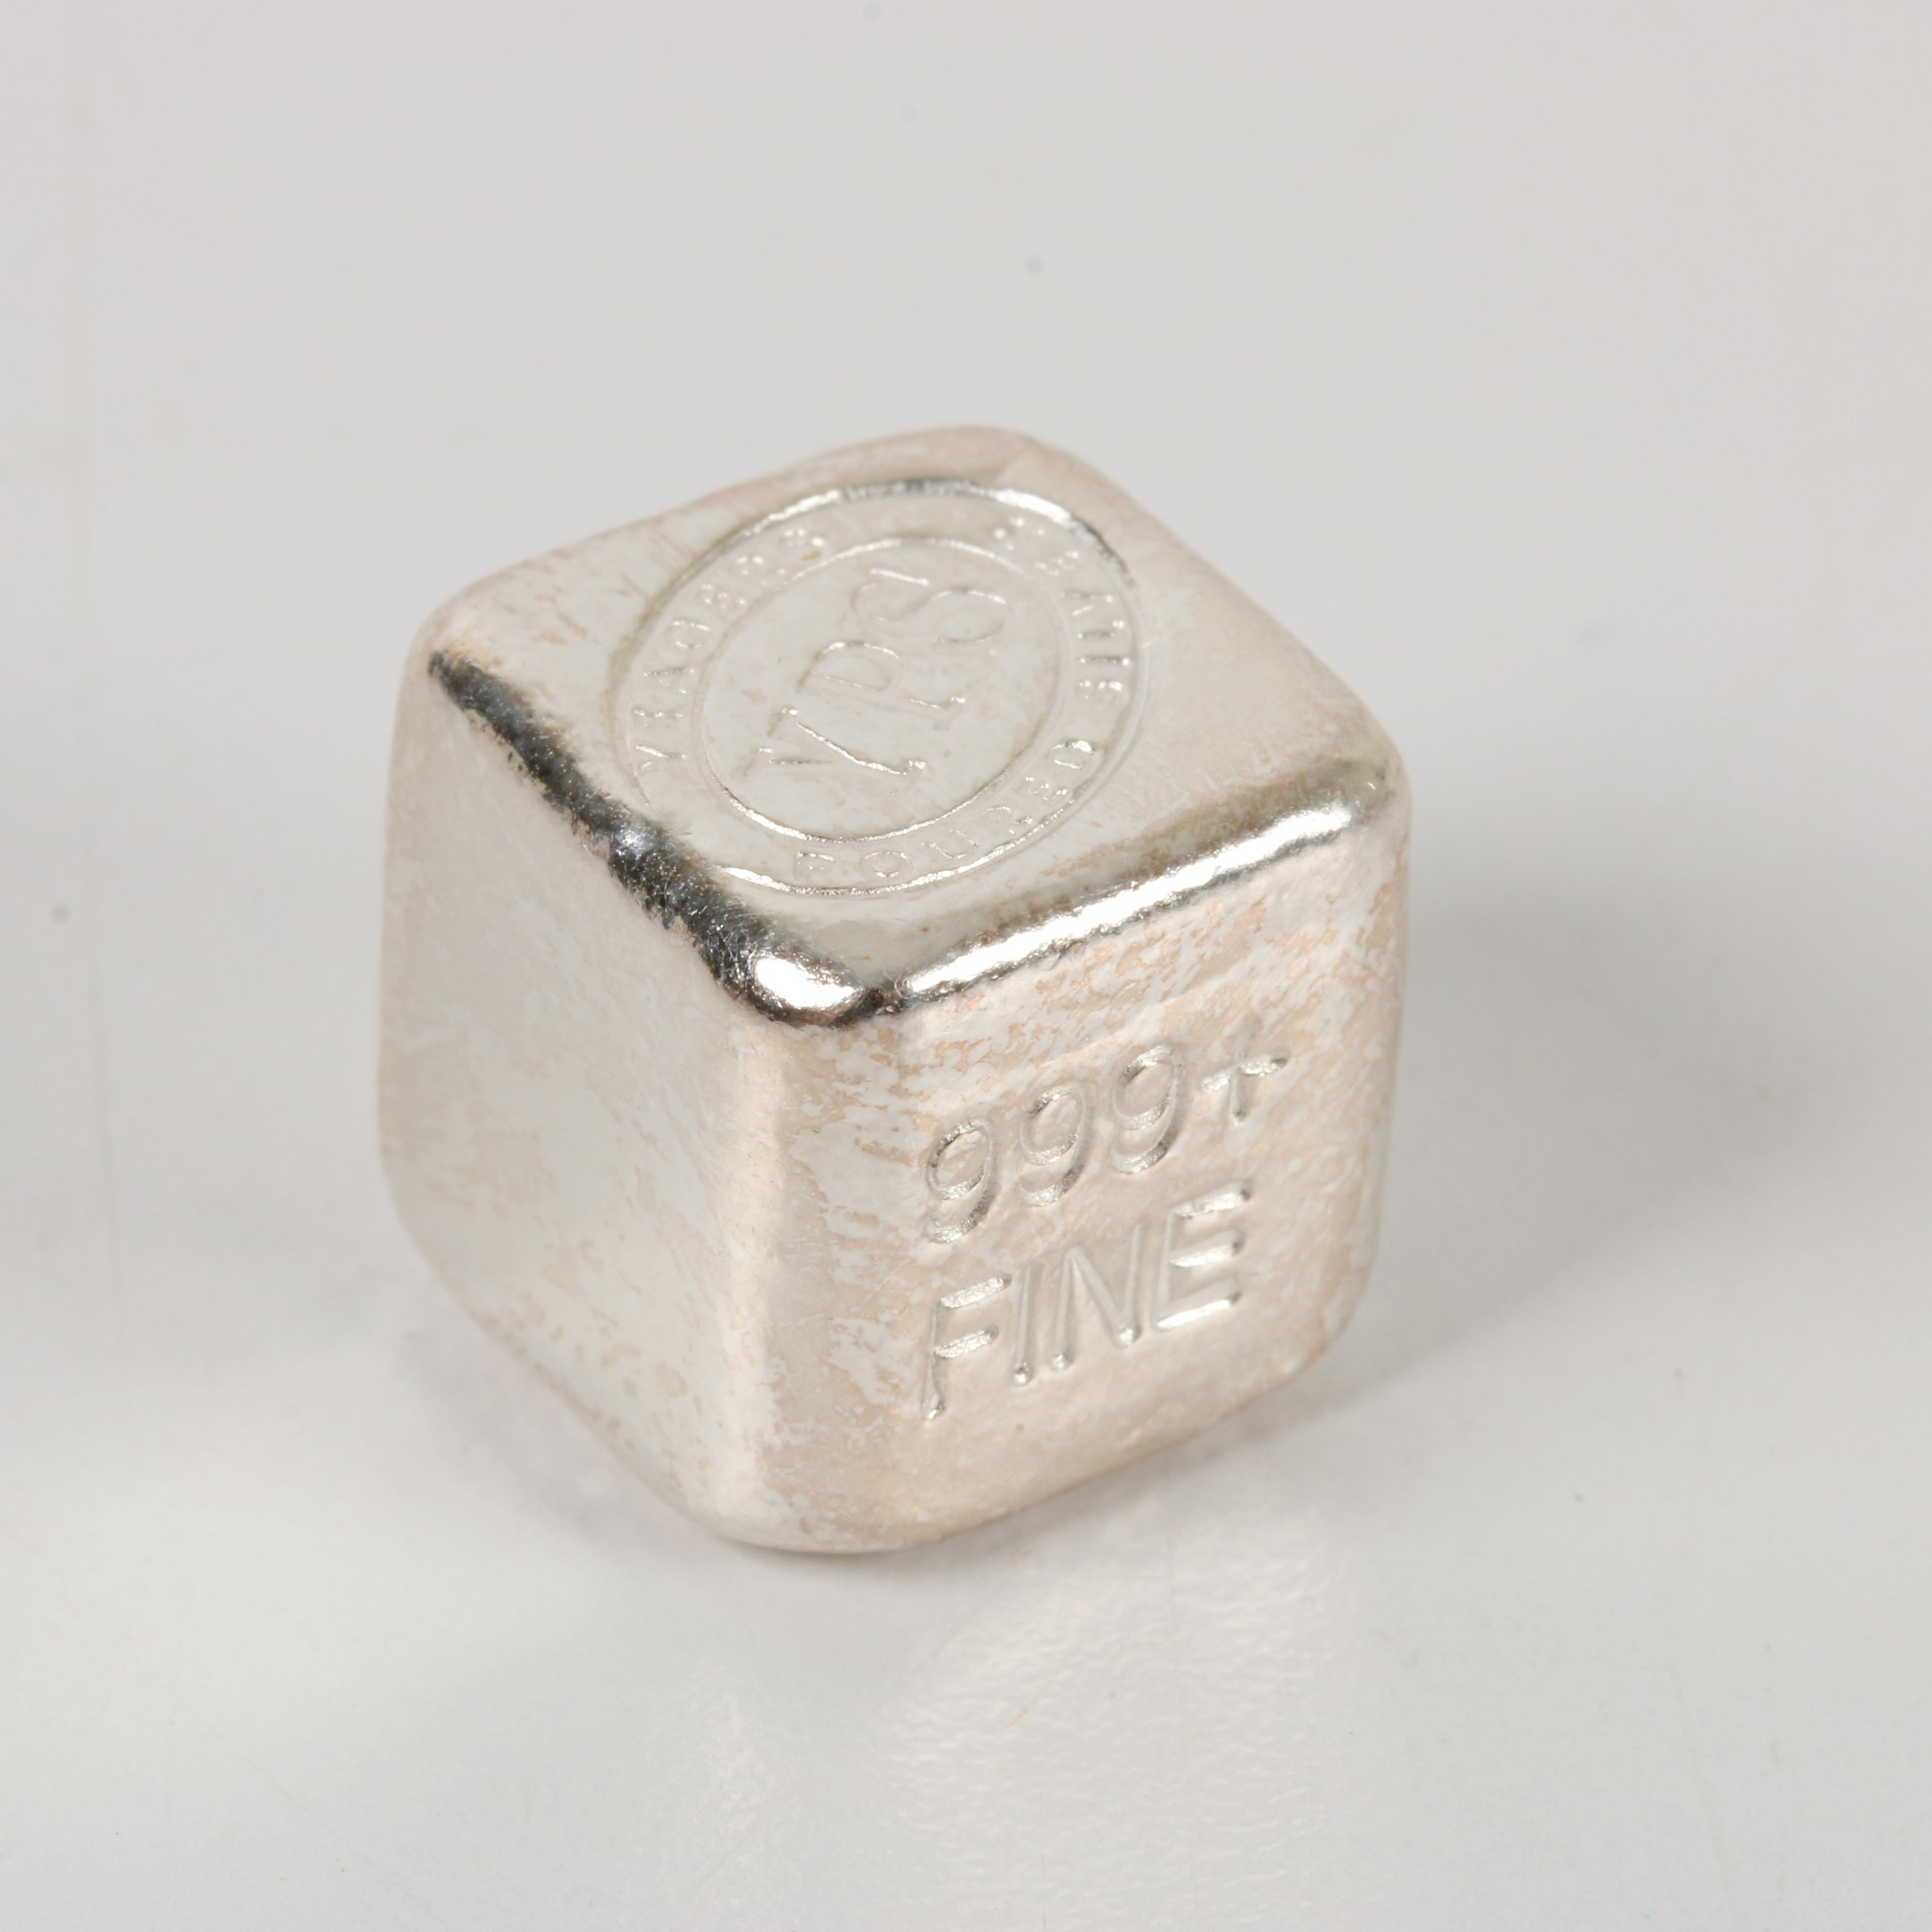 A One-Troy Ounce .999 Fine Silver Cube